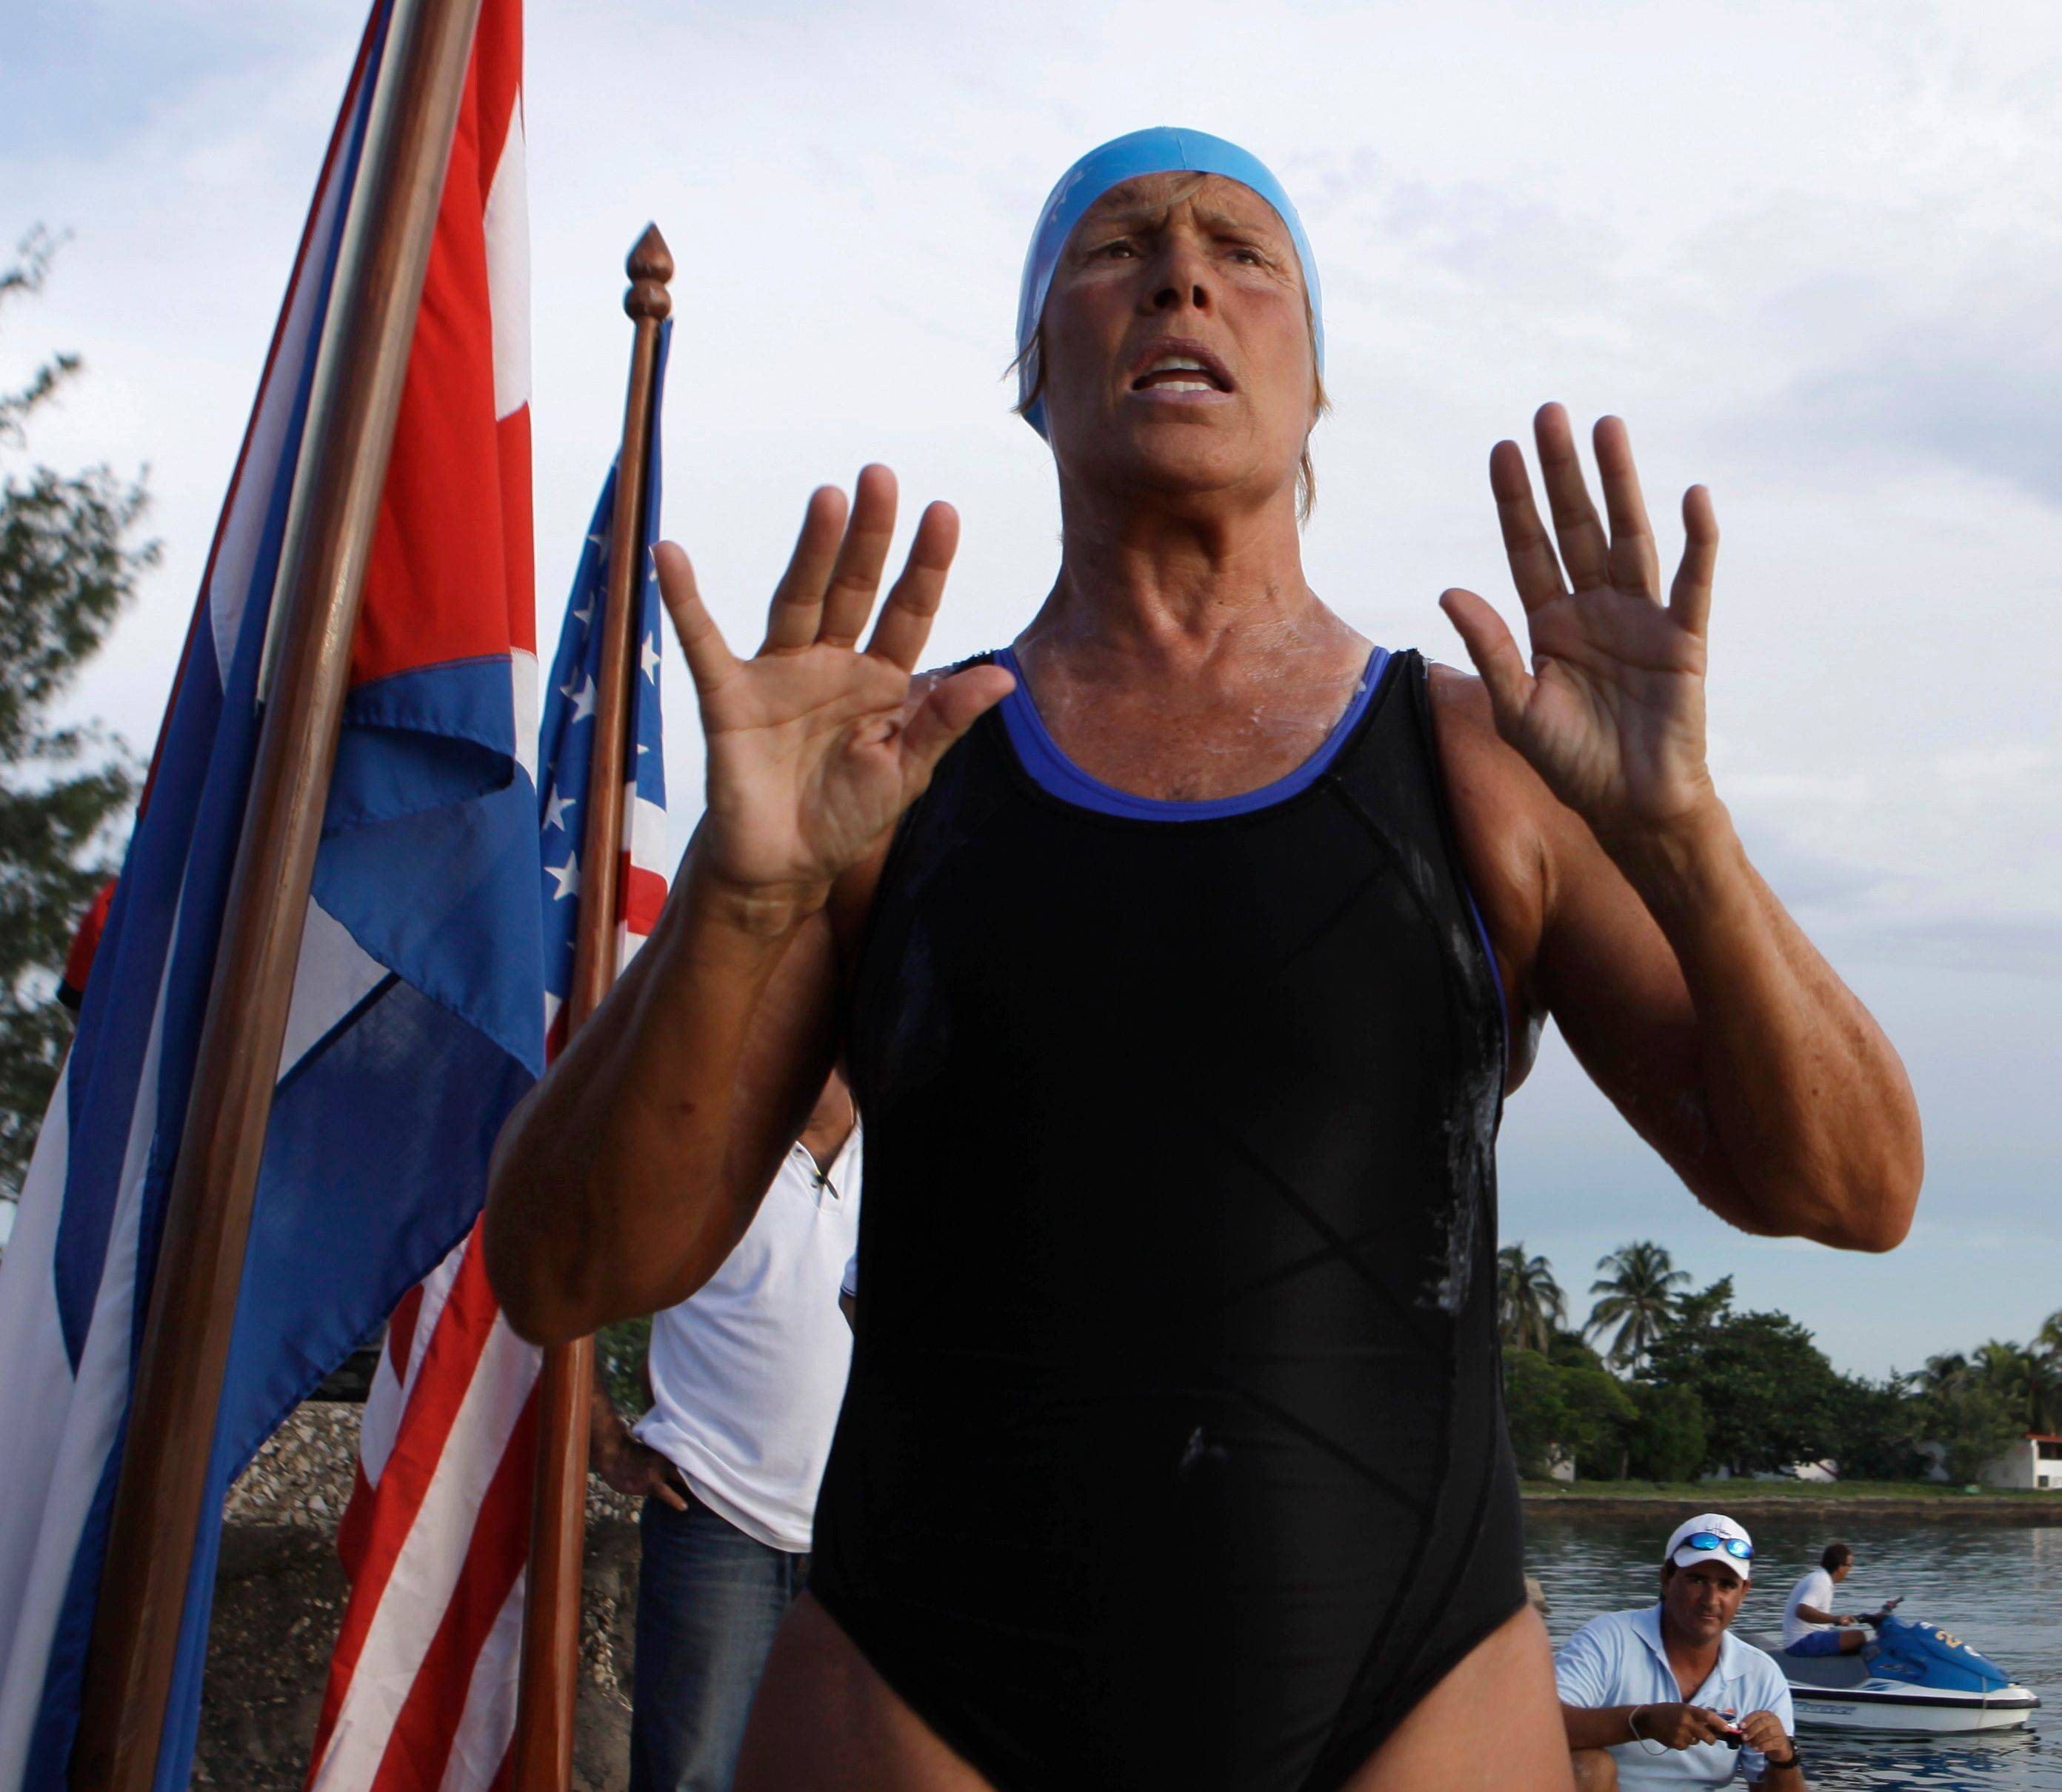 Swimmer Diana Nyad speaks with journalists before attempting to swim from Cuba to Florida at the Hemingway Marina in Havana on Friday.